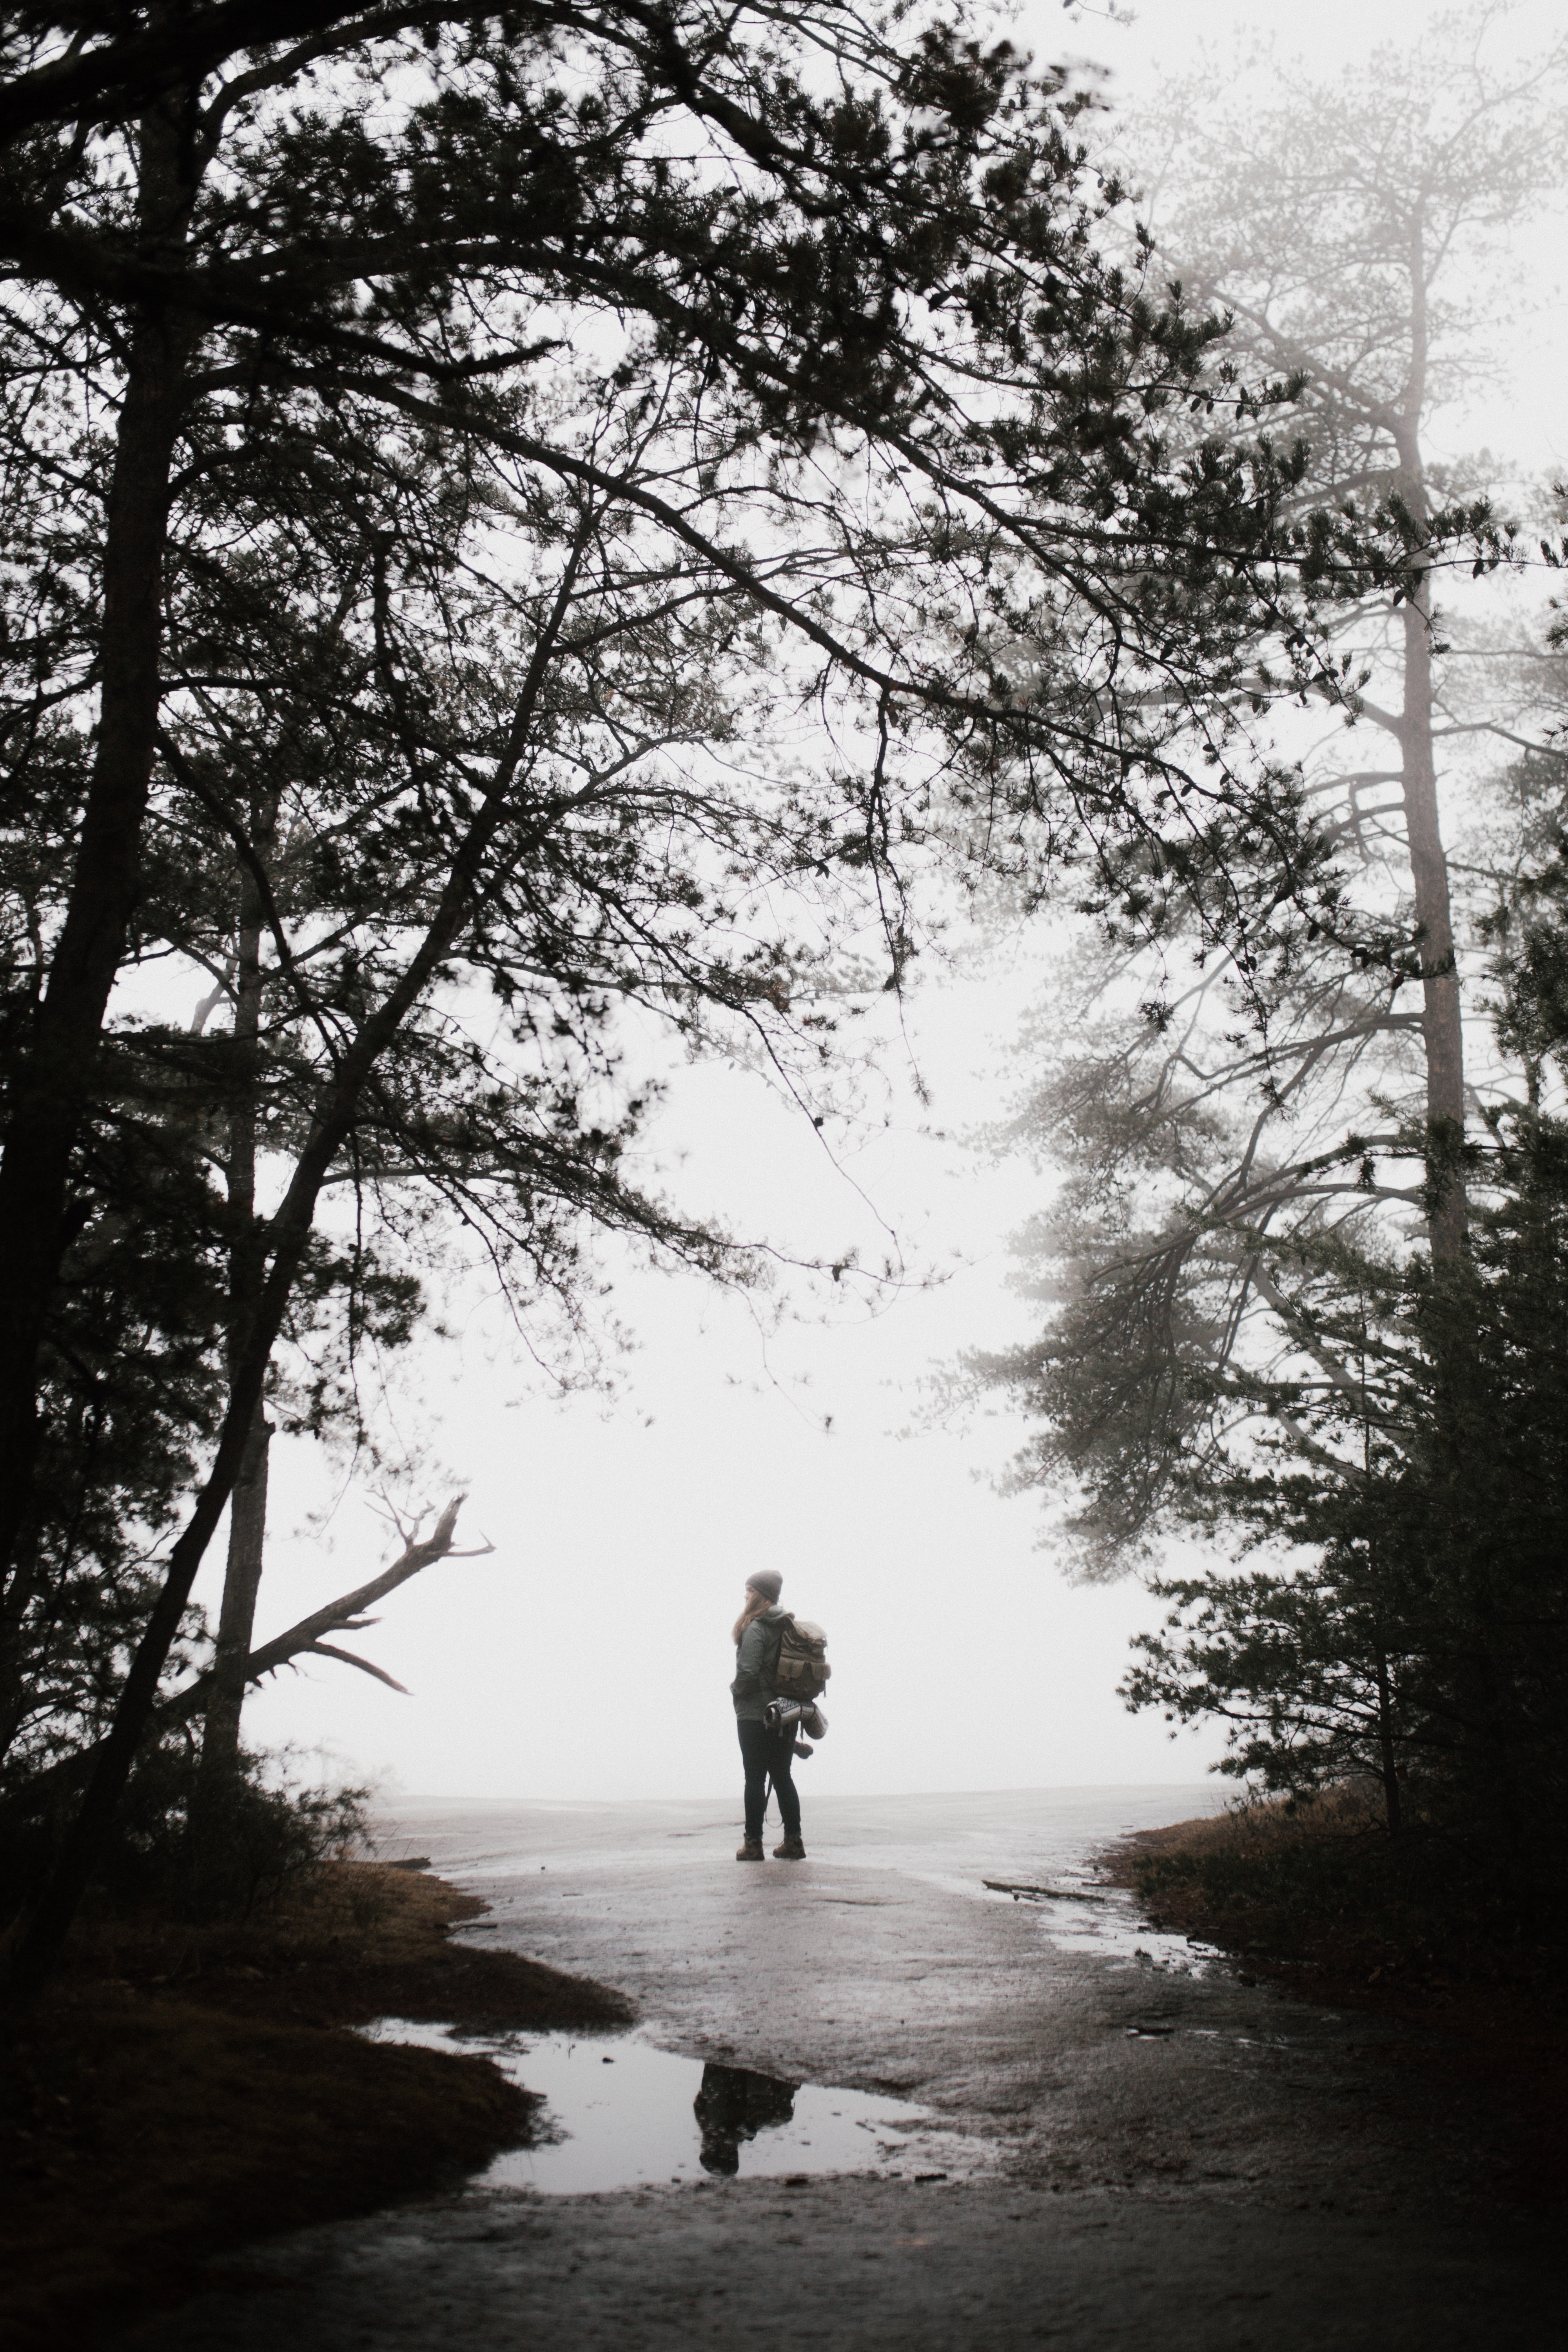 silhouette photo of person standing near tree